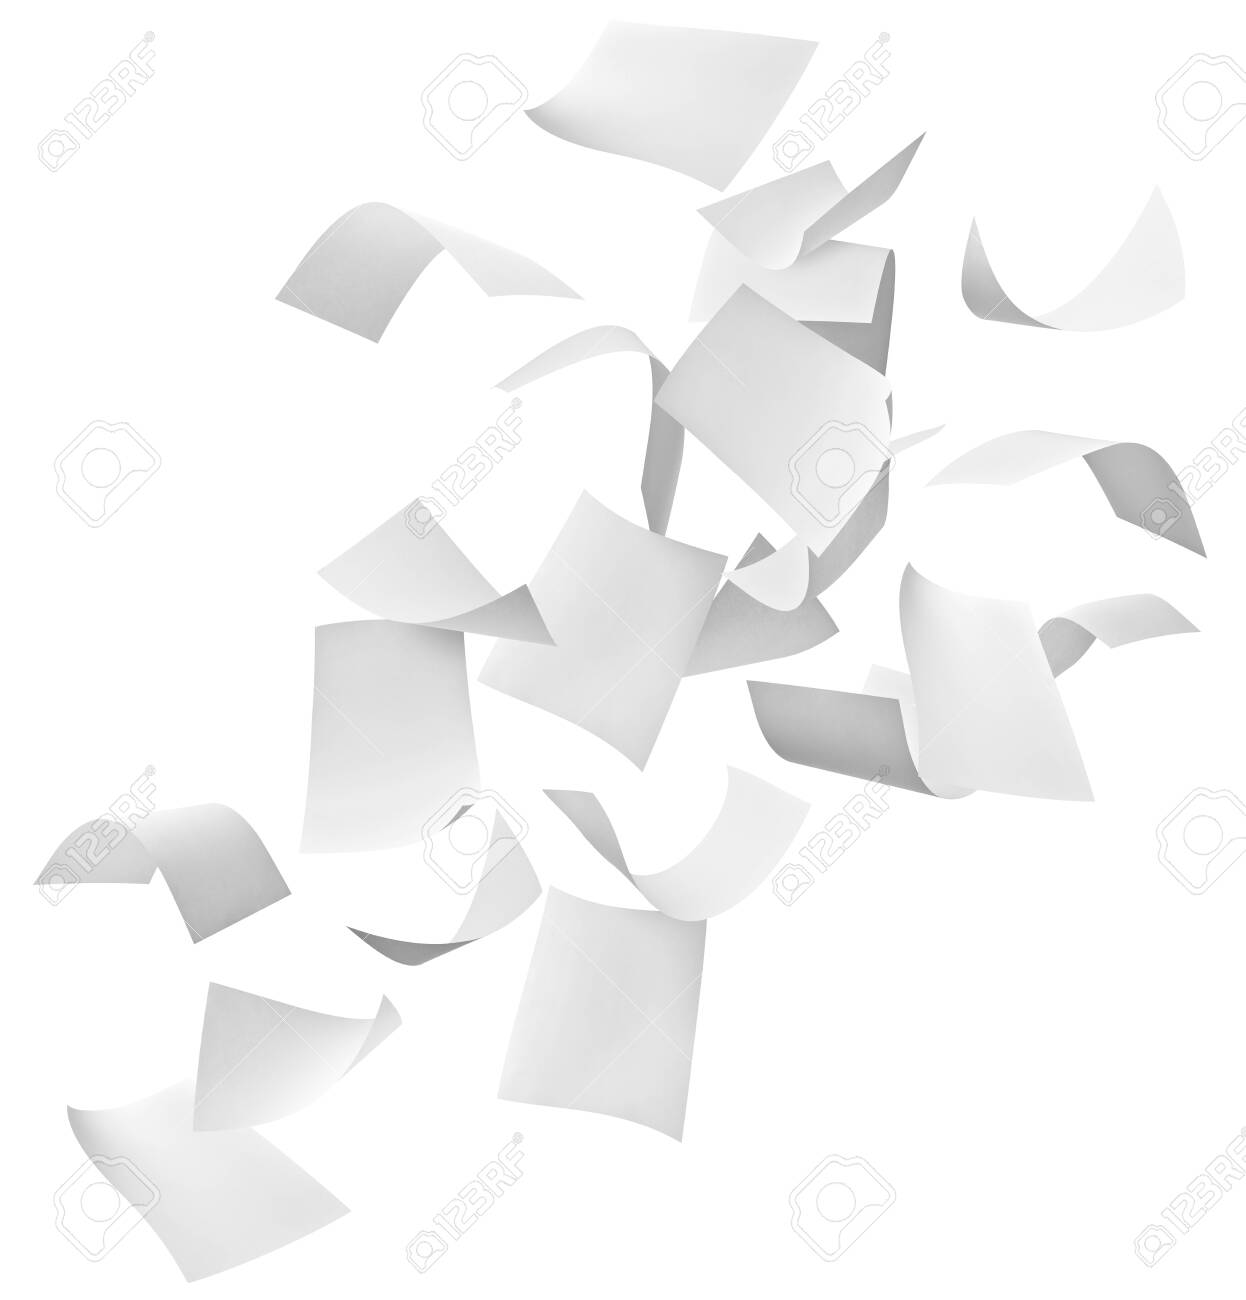 close up of flying papers on white background - 129879880